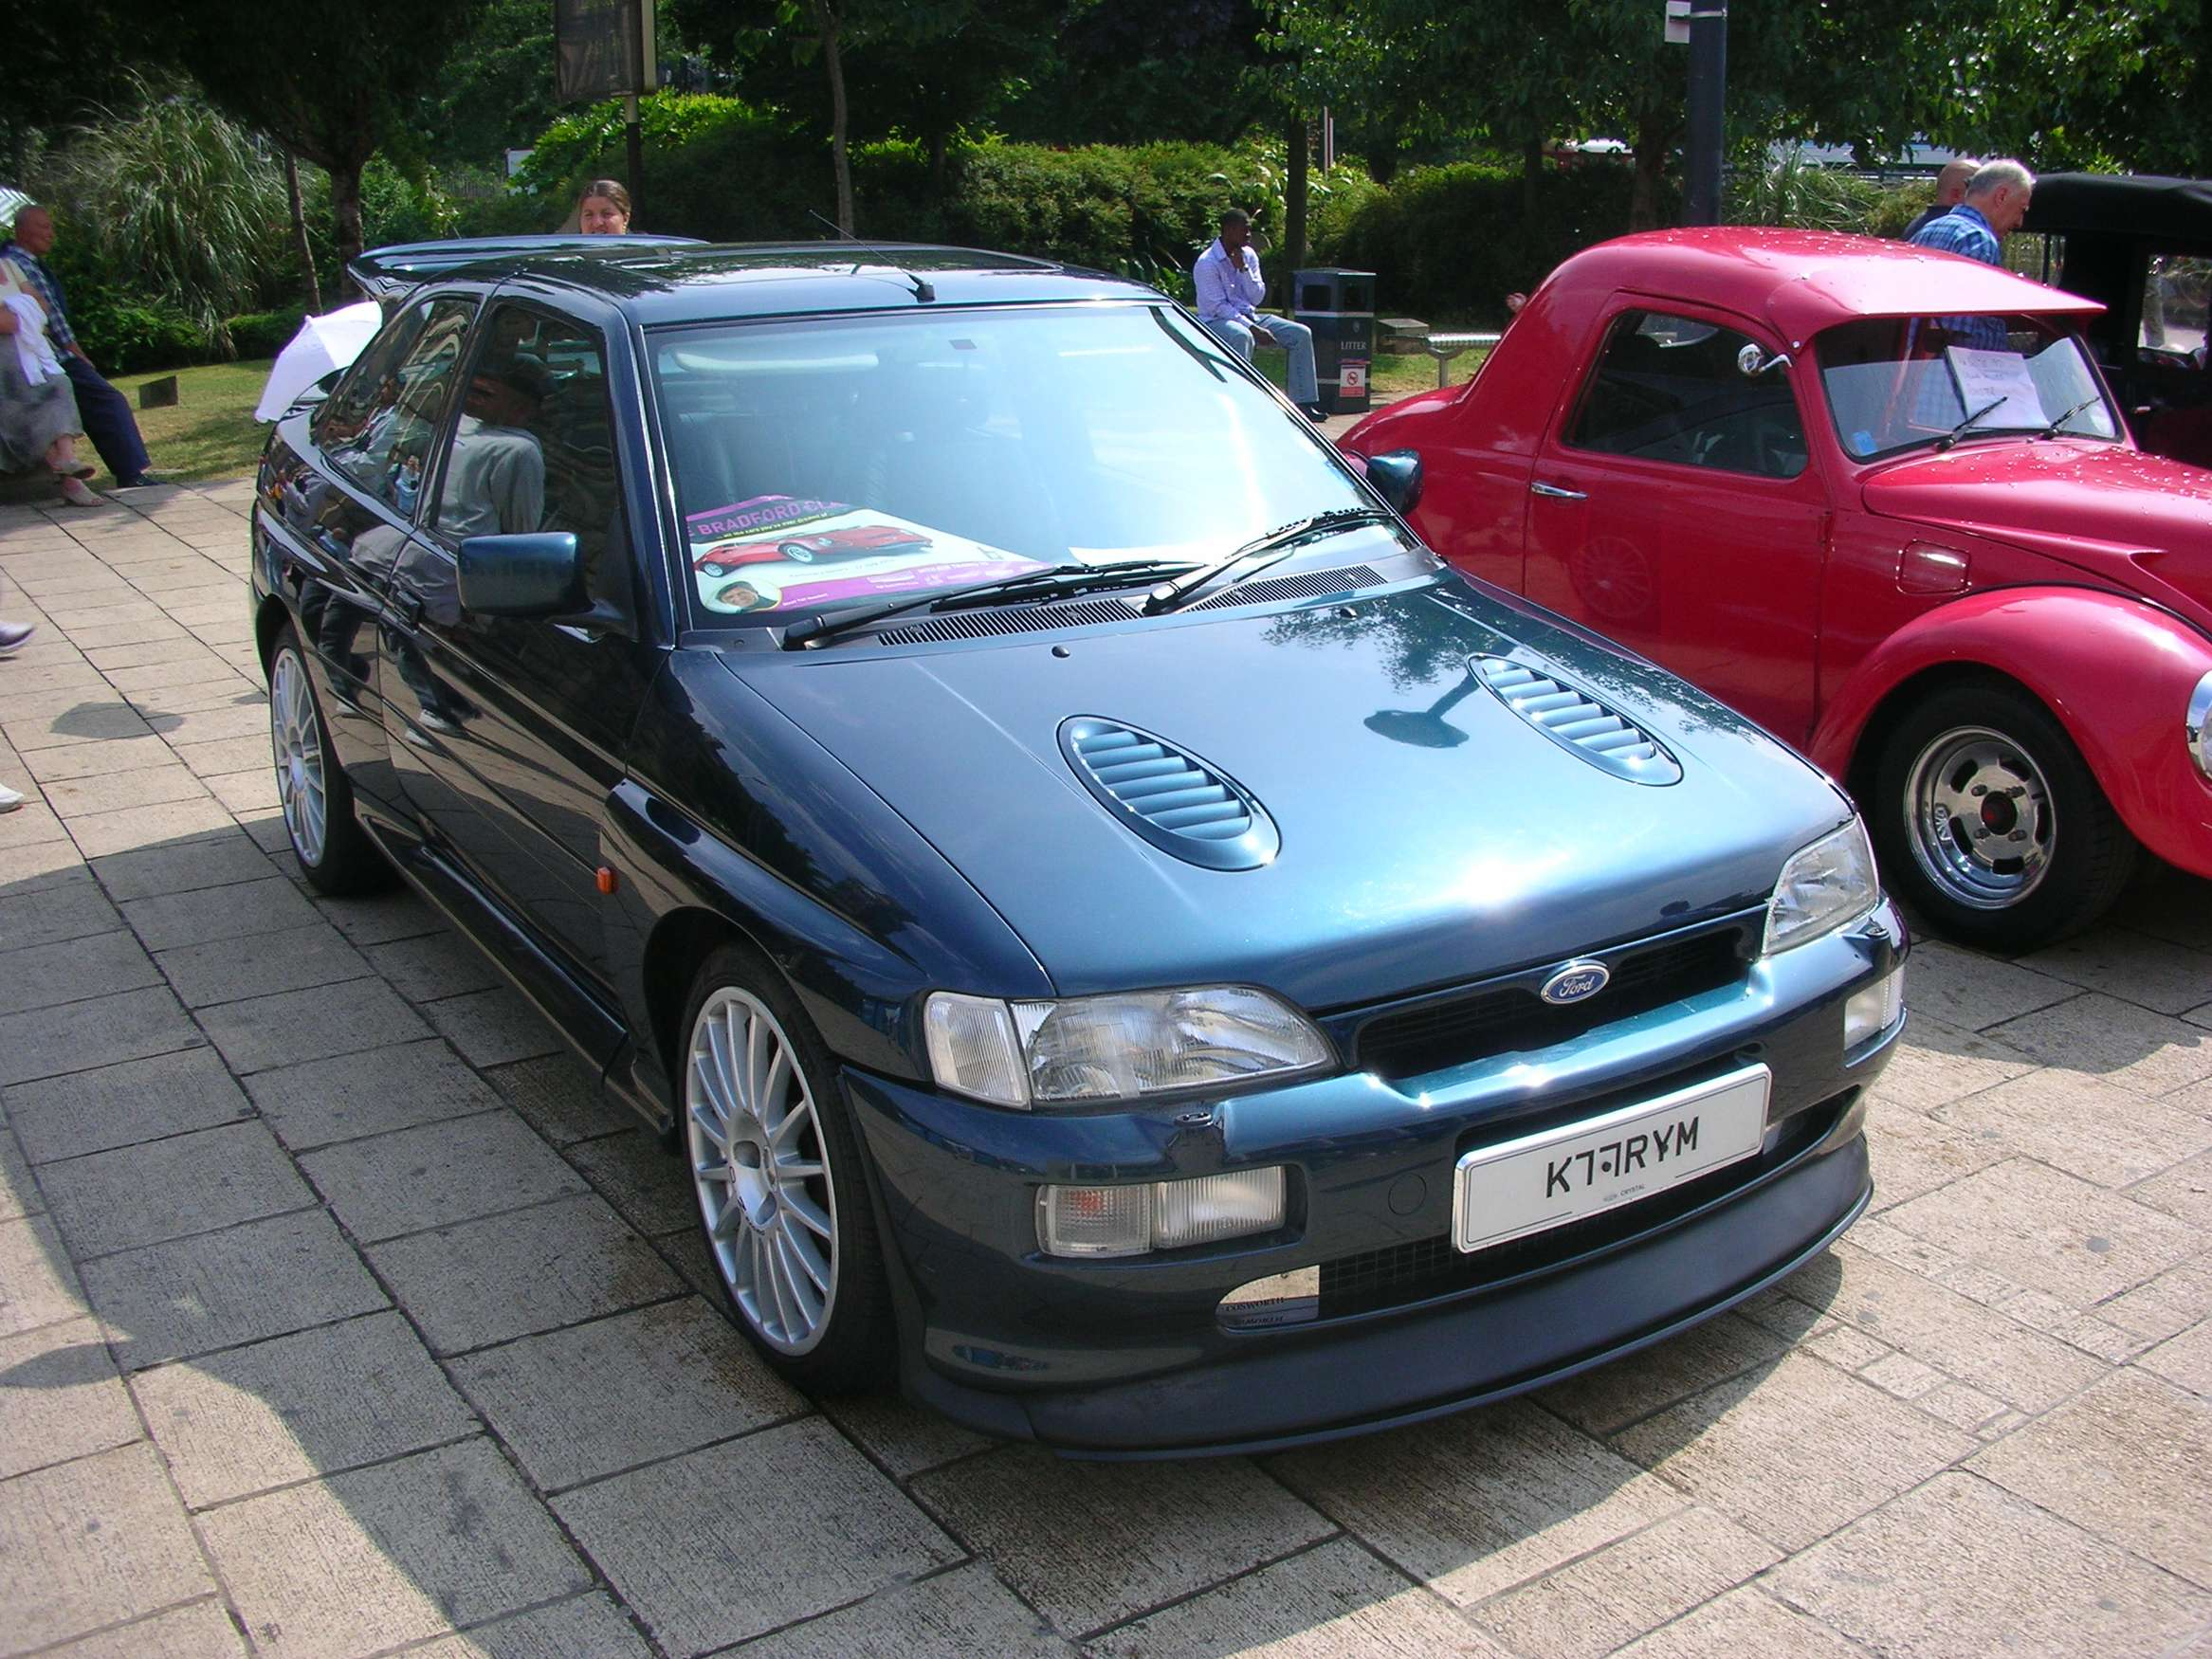 Ford Escort RS Cosworth #9205759